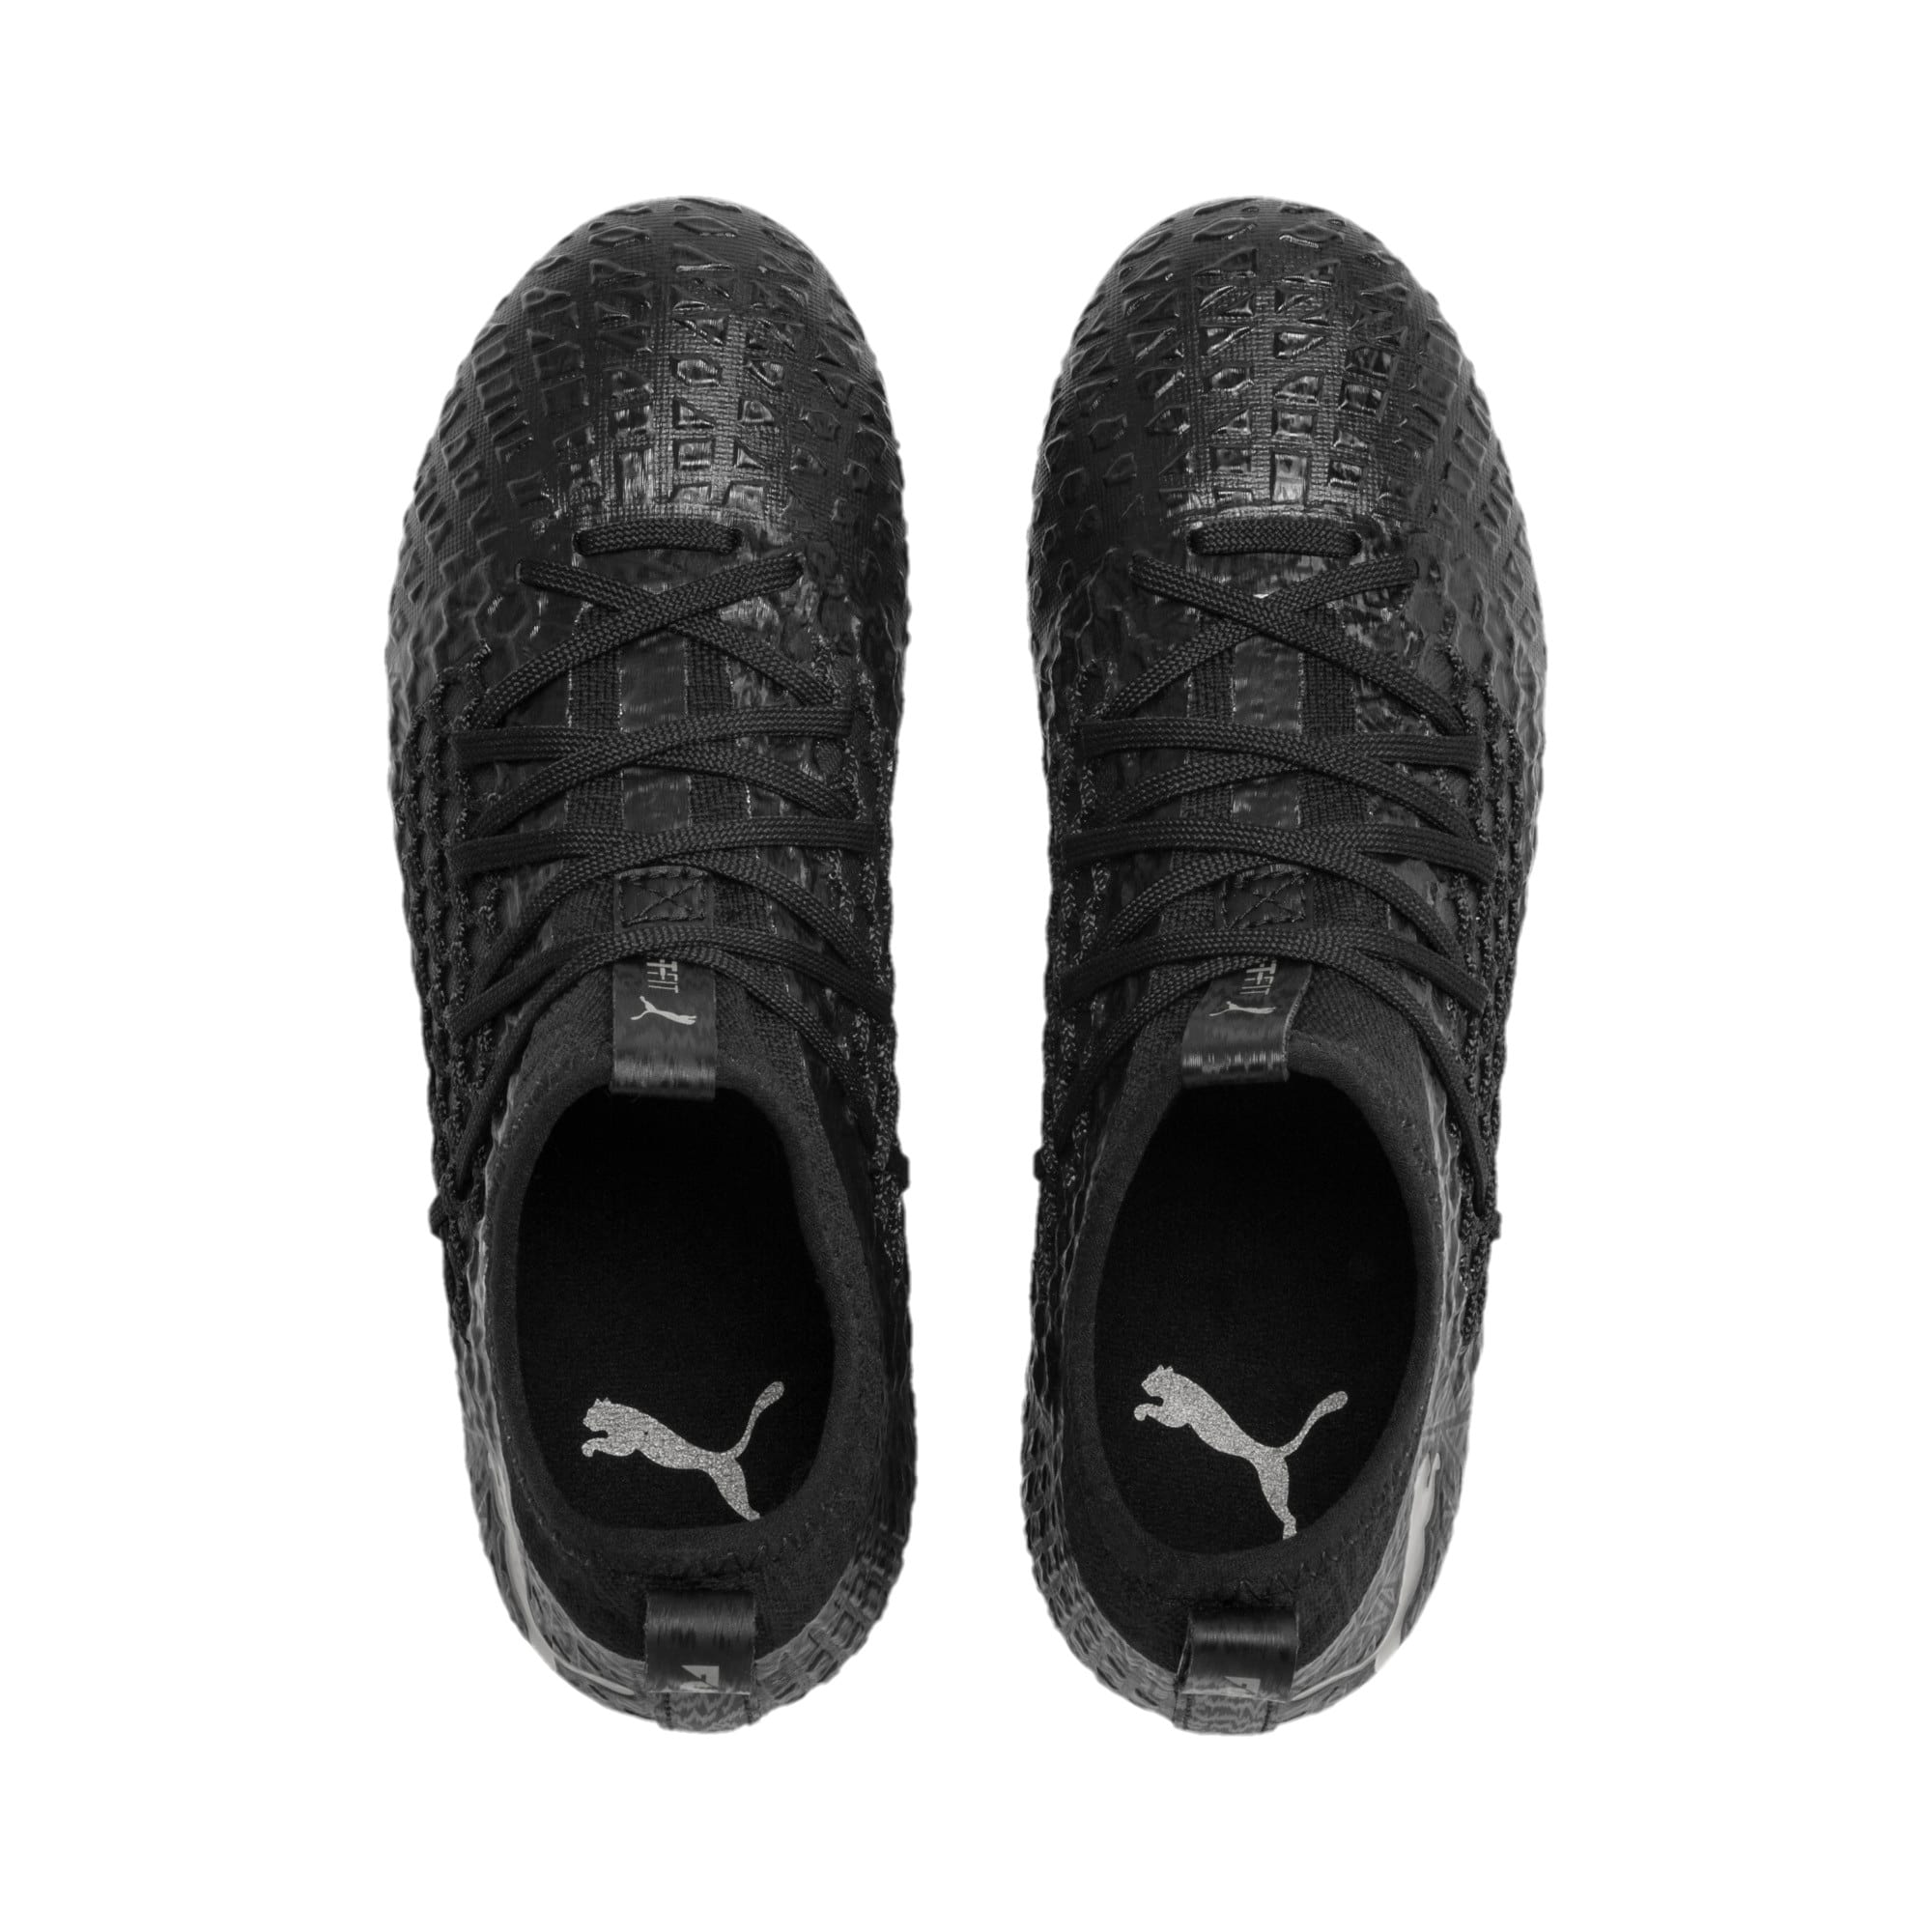 Thumbnail 6 of FUTURE 4.3 NETFIT Youth FG/AG Football Boots, Black-Black-Puma Aged Silver, medium